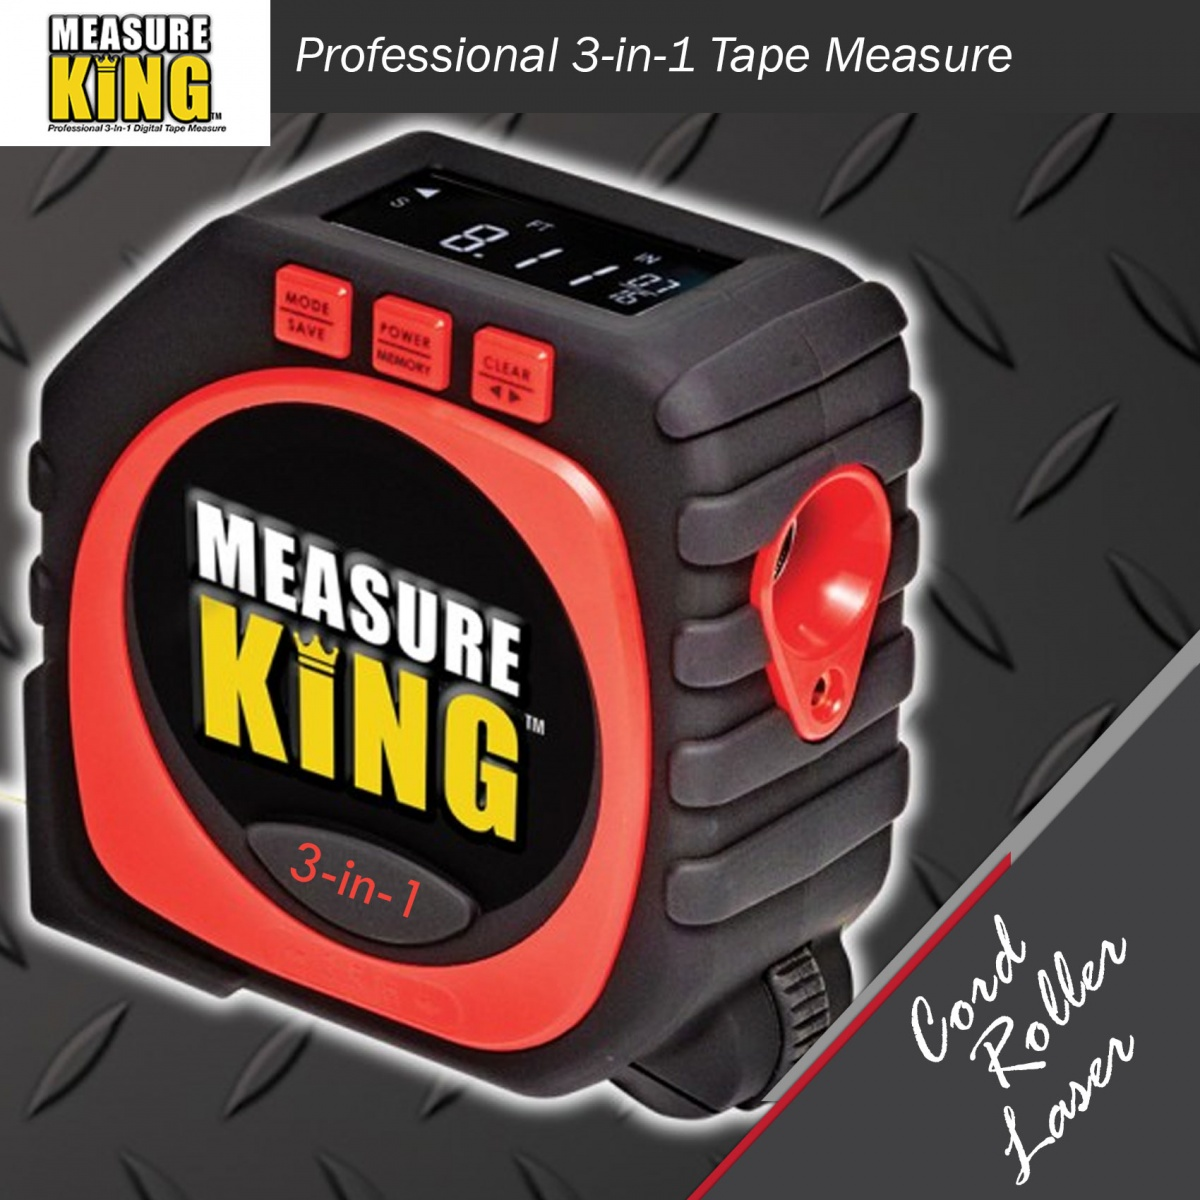 Measure King 3 In 1 Digital Tape Measure  - Red